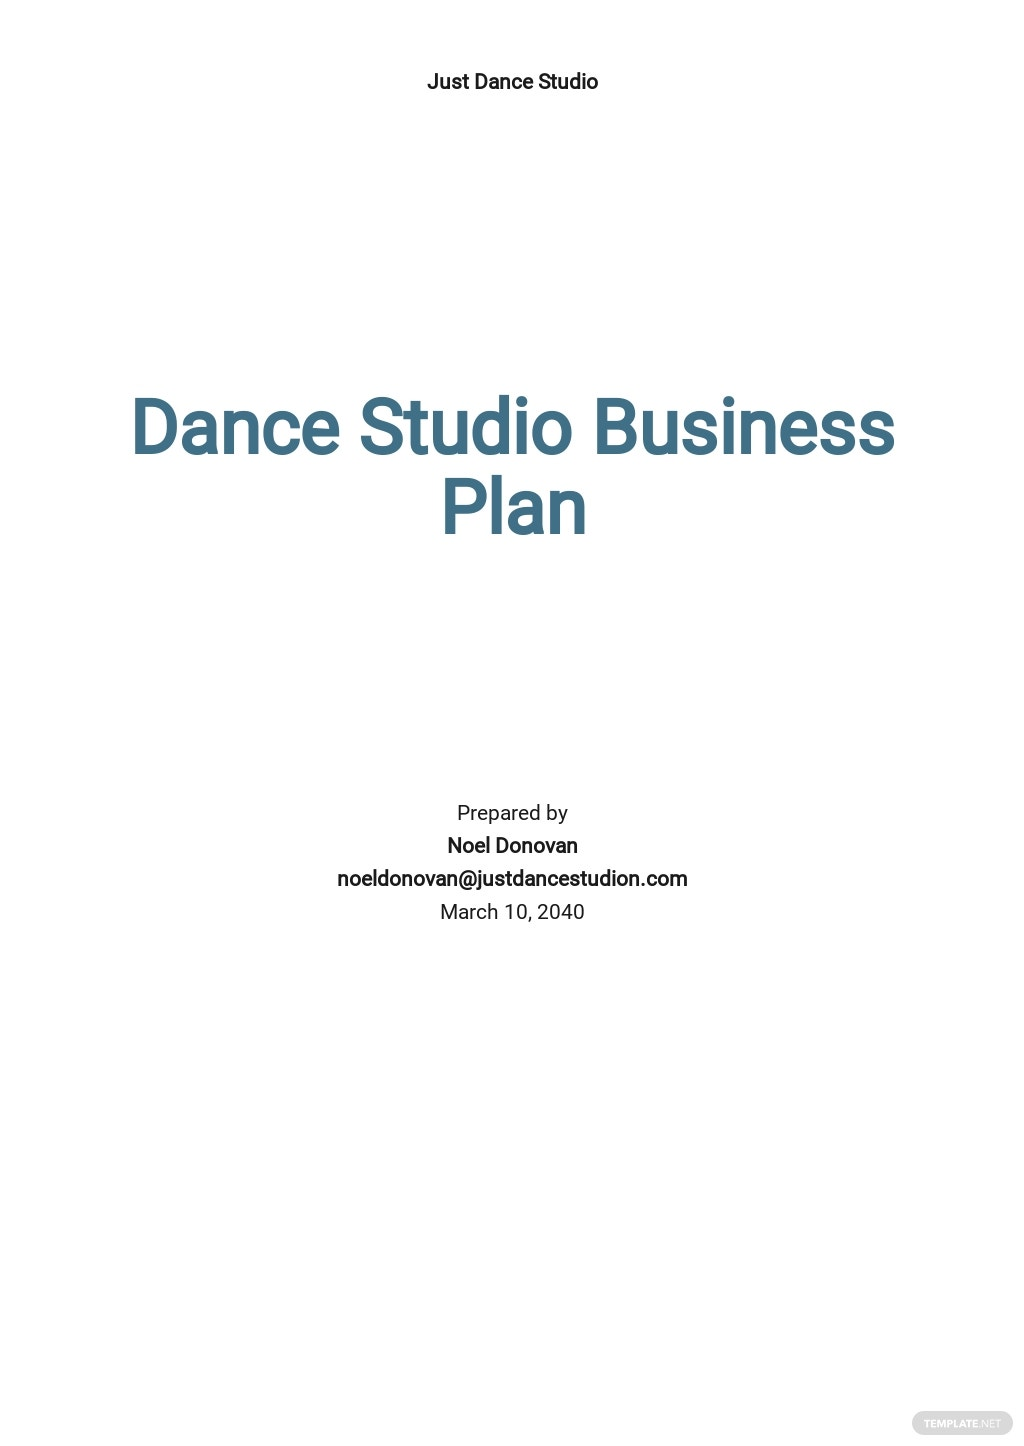 Dance Studio Business Plan Template